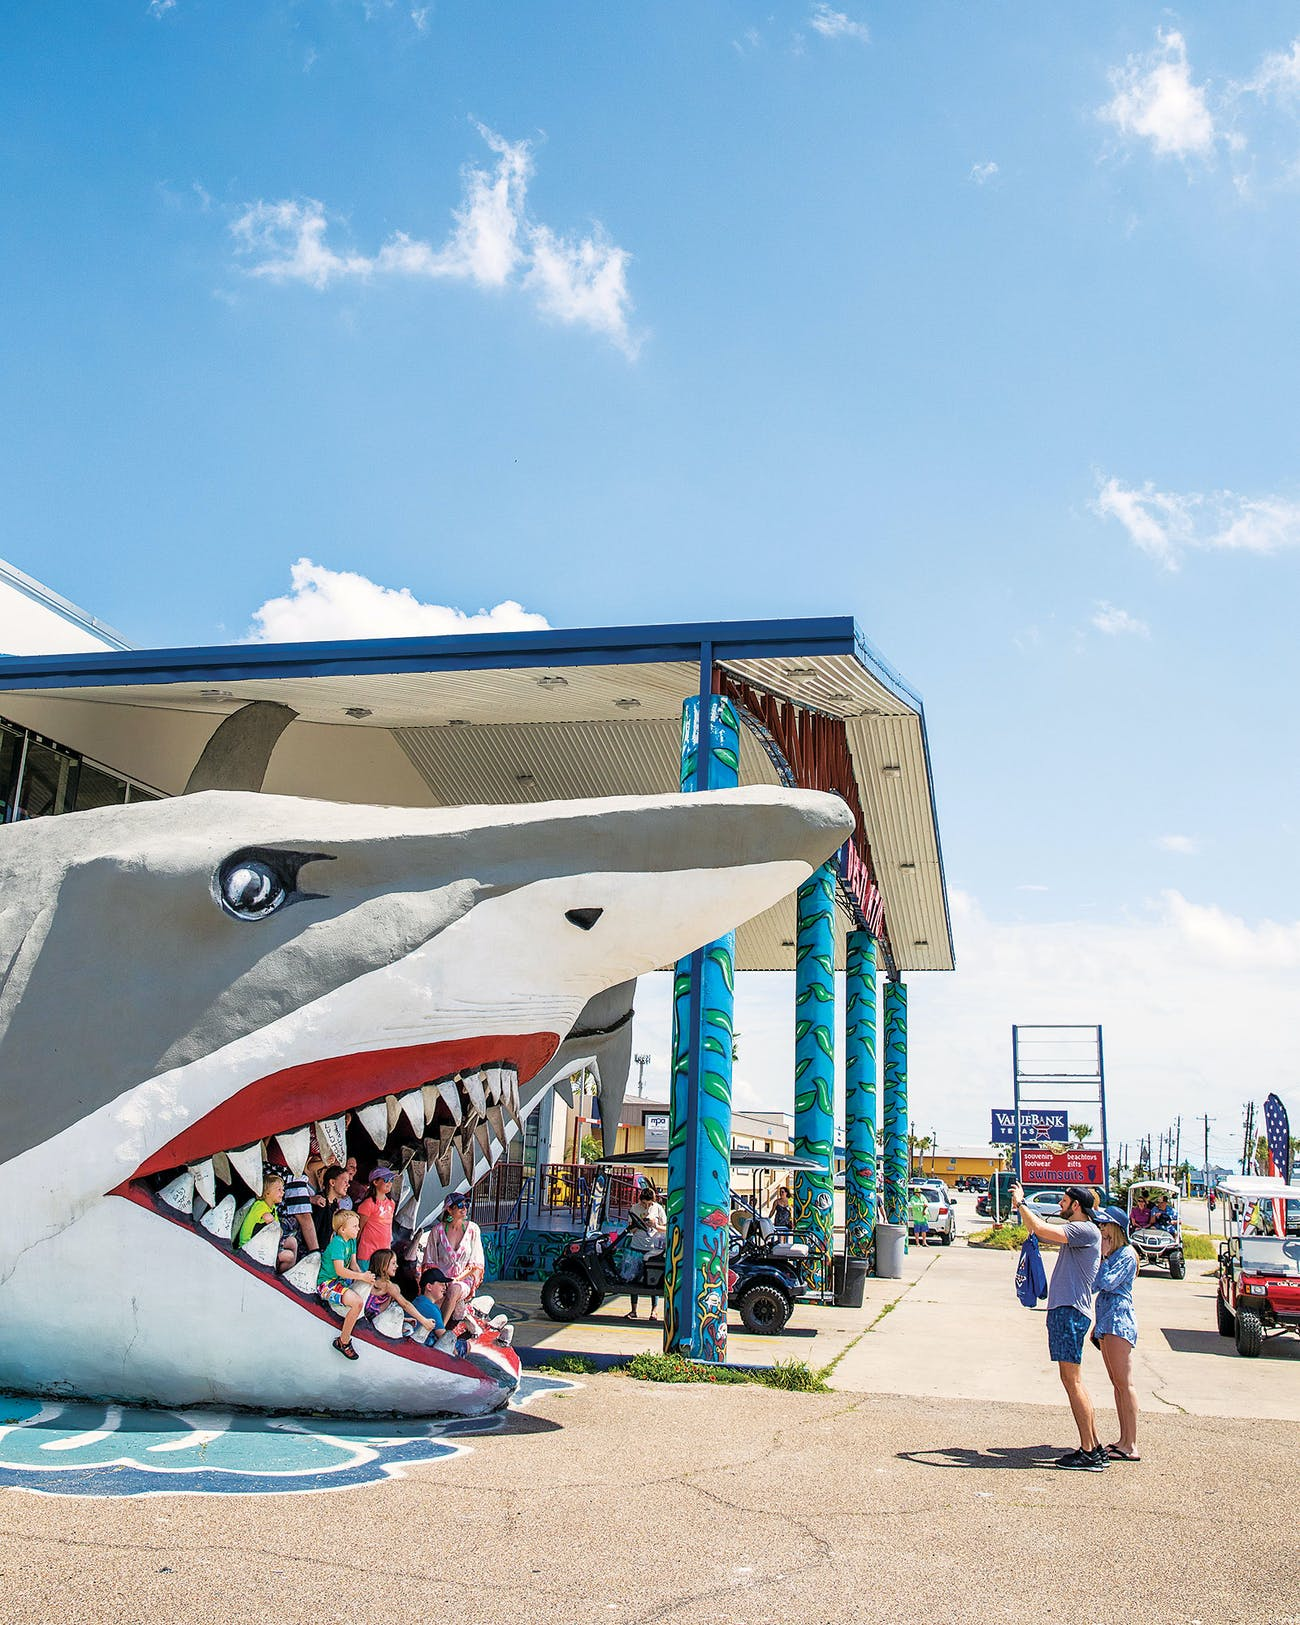 Shark Port Aransas harvey